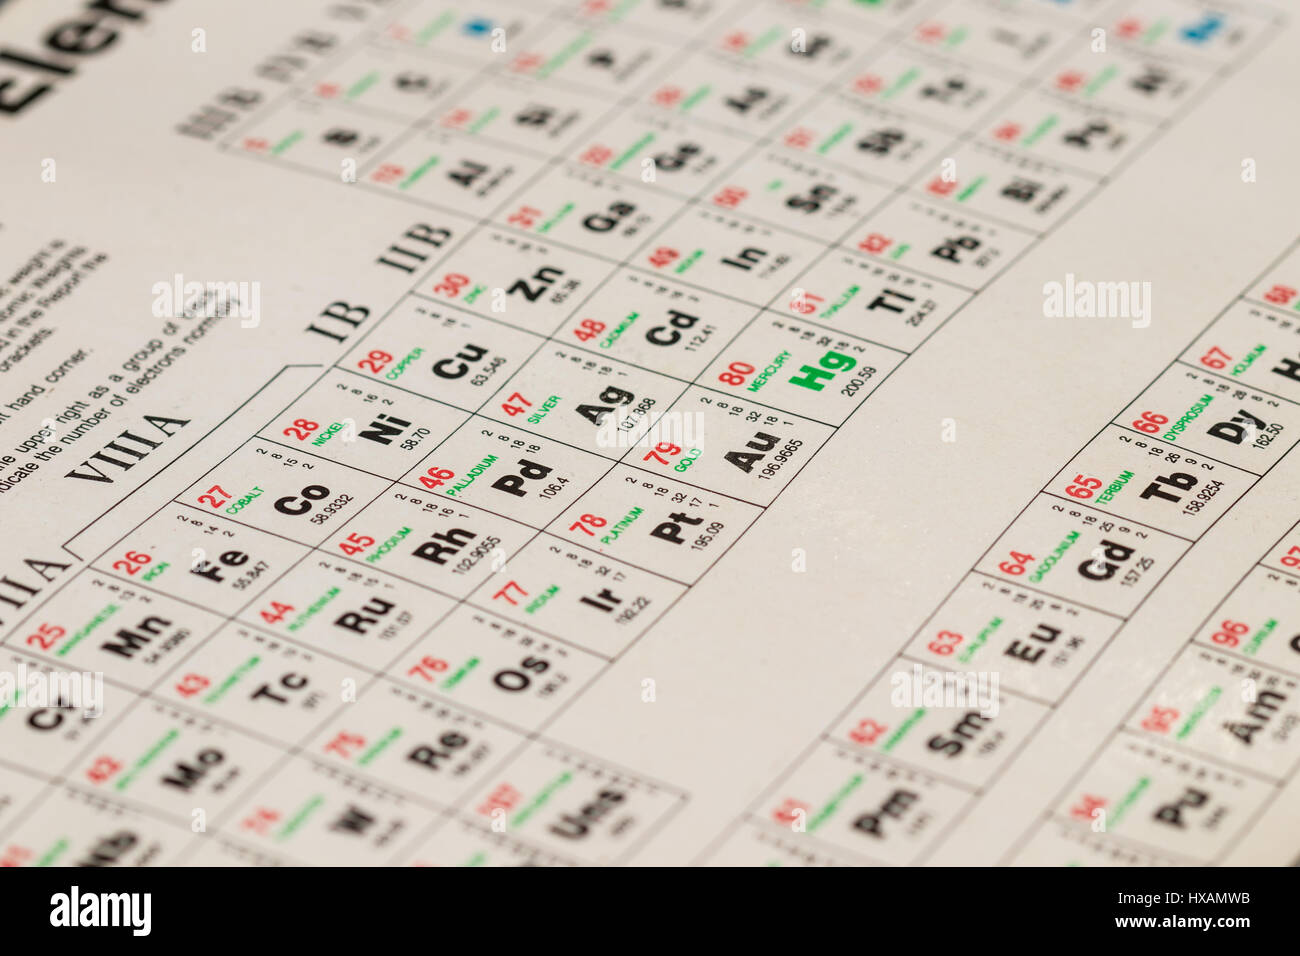 Periodic table elements science background stock photos periodic detail of an old periodic table of elements showing their symbol atomic weight gamestrikefo Choice Image